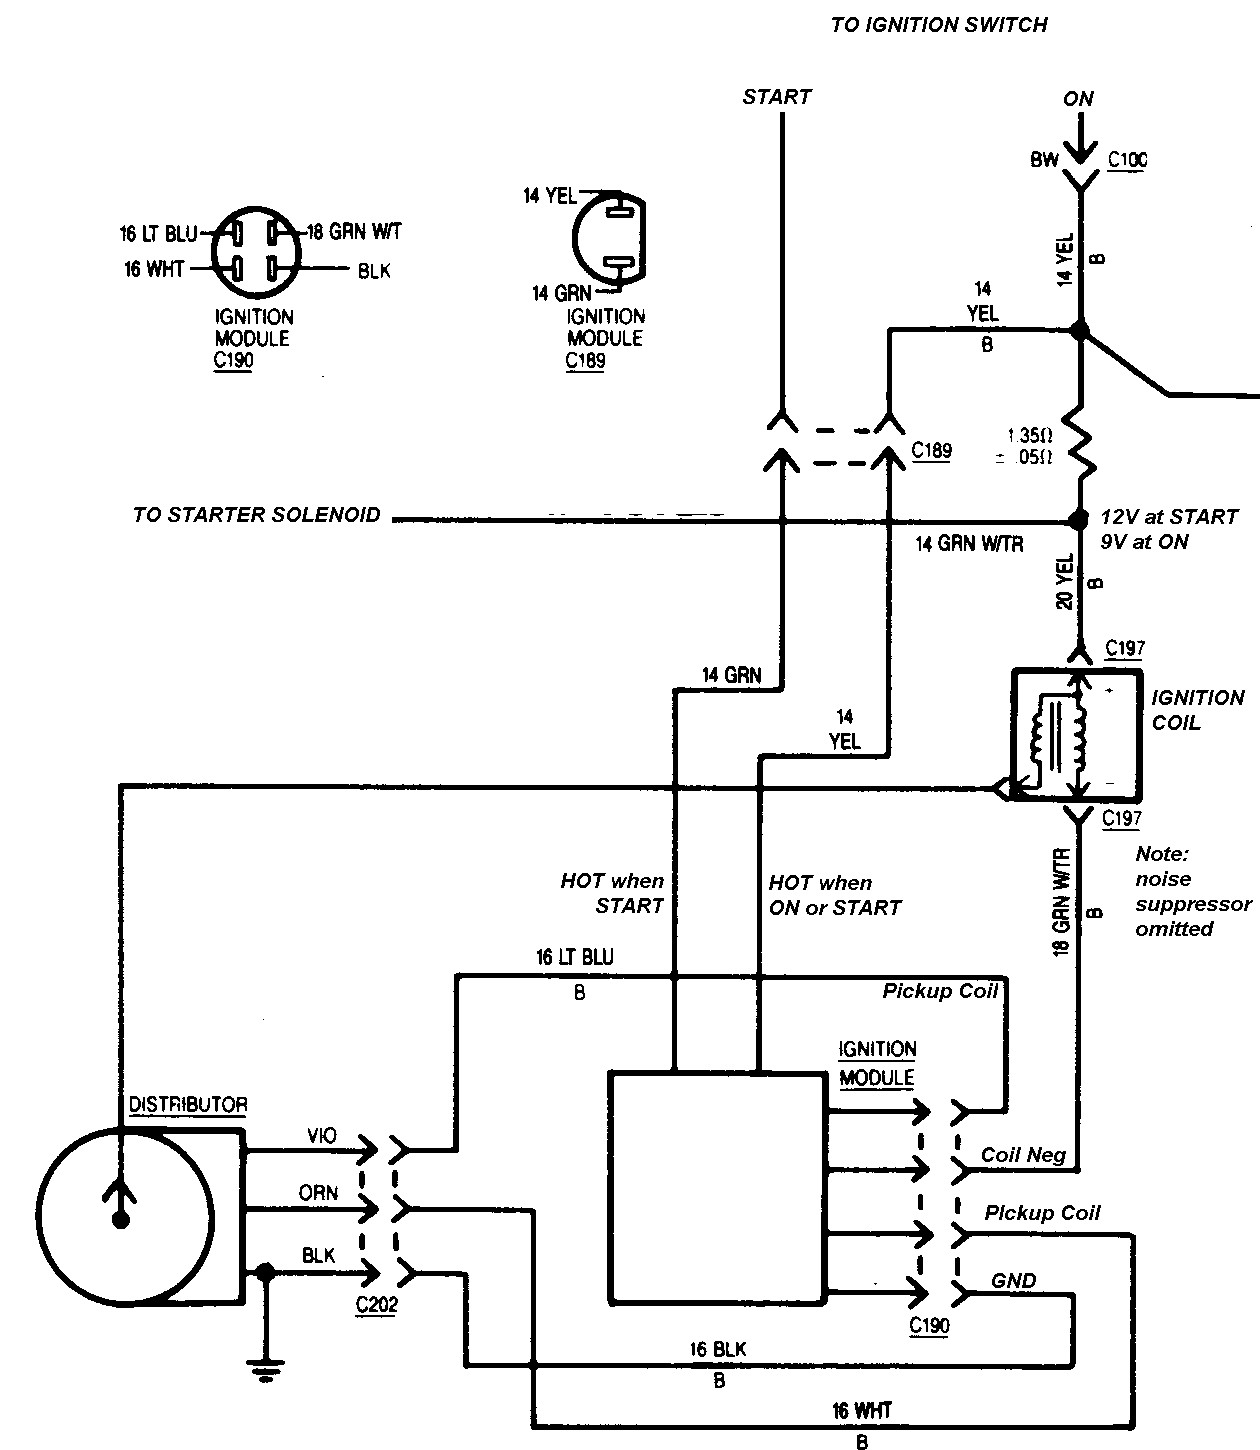 350 Tbi Wiring Diagram Dist - Largest Wiring Diagrams •  Dodge Tbi Wiring Harness on dodge radio harness, dodge owner's manual, dodge fuse panel, dodge wiring diagrams, dodge sending unit, dodge knock sensor, dodge clutch switch, dodge repair manual, dodge alternator brackets, dodge grab handle, dodge upper control arm, dodge neutral safety switch, dodge gas pedal, dodge water outlet, dodge ac clutch, dodge power door lock actuator, dodge cigarette lighter socket, dodge expansion valve, dodge u joint, dodge headlamp,